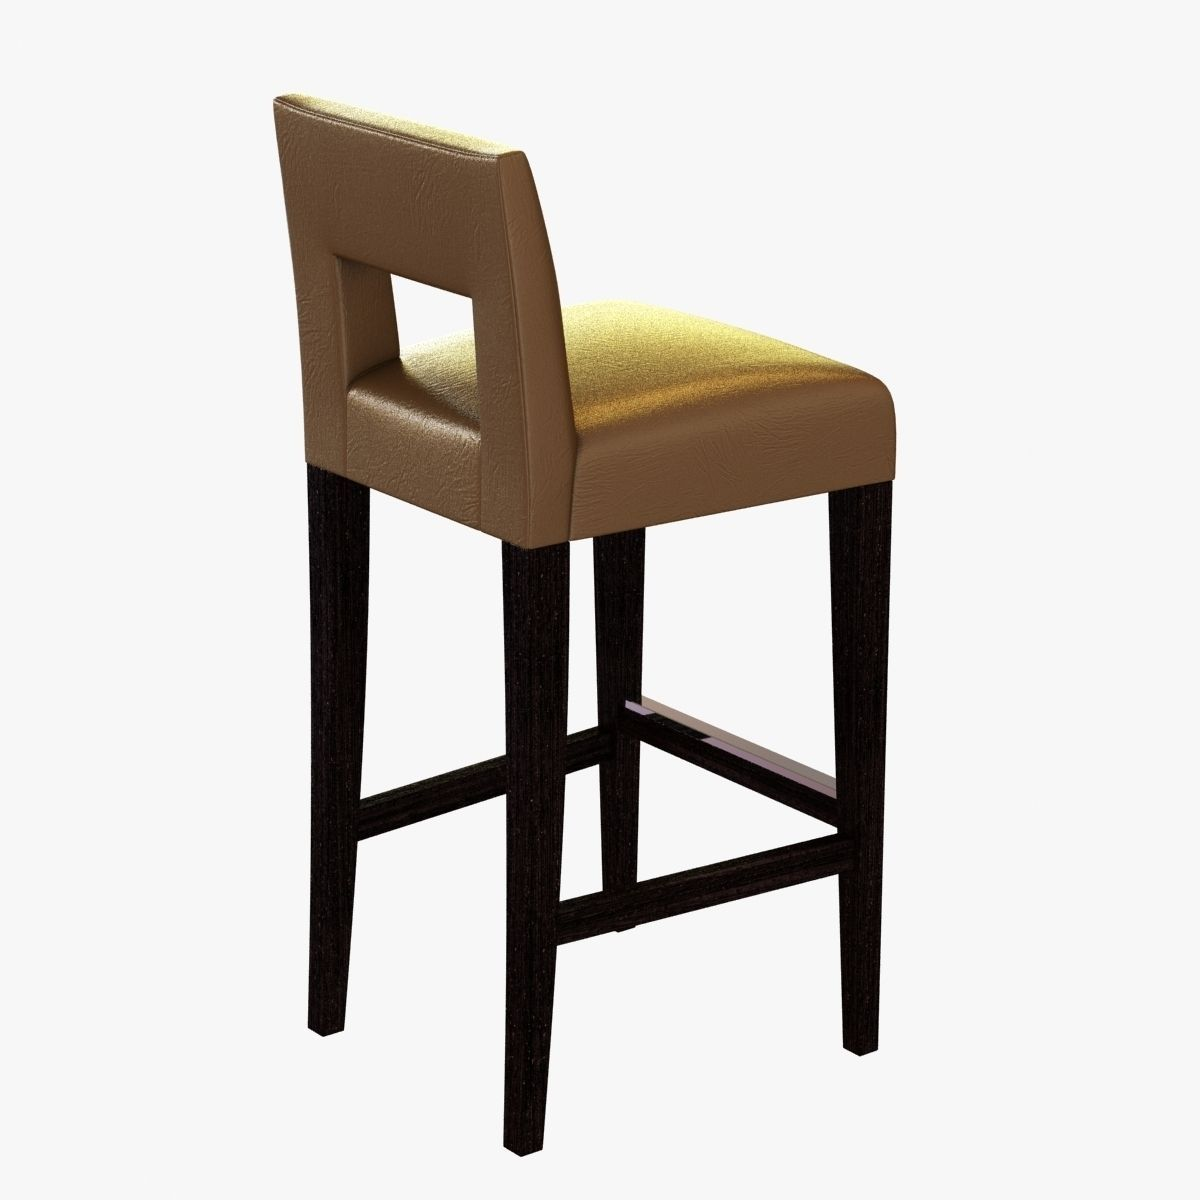 Sofa And Chair Company Hugo Bar Stool 3D Model MAX OBJ 3DS